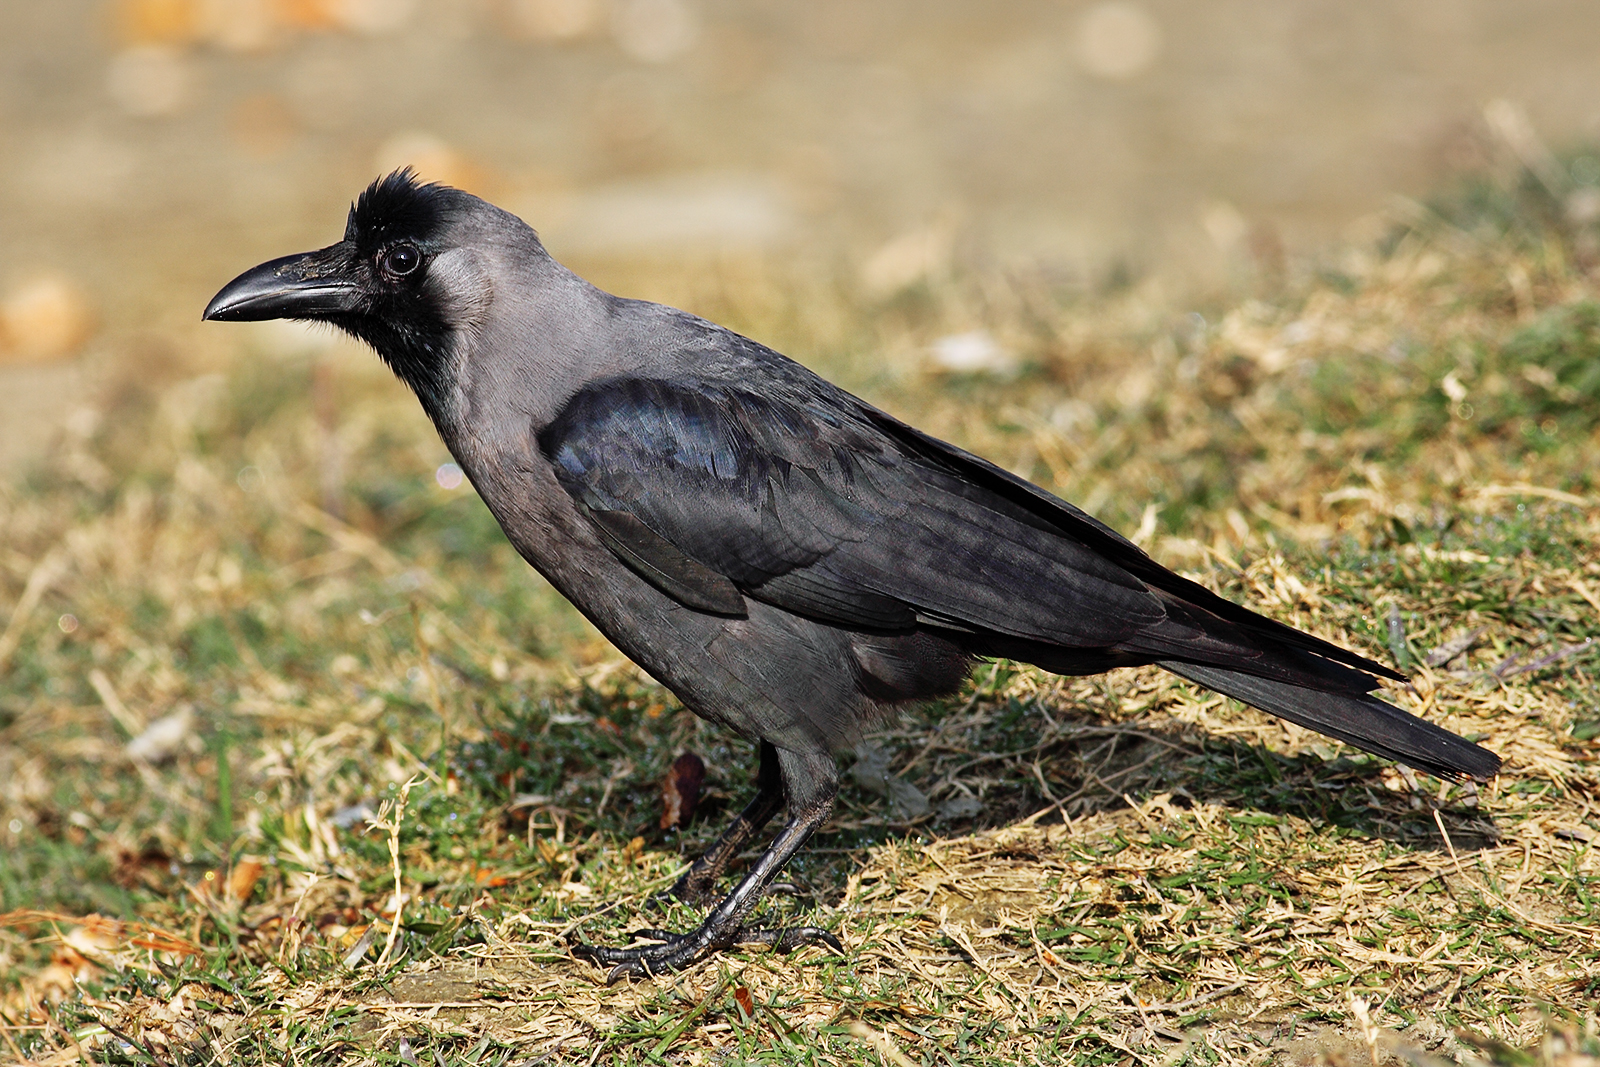 An invasive house crow, native to southern Asia, was falsely reported in Melbourne's CBD in 2014.   Benjamint444/Wikimedia Commons  (GNU FDL 1.2)